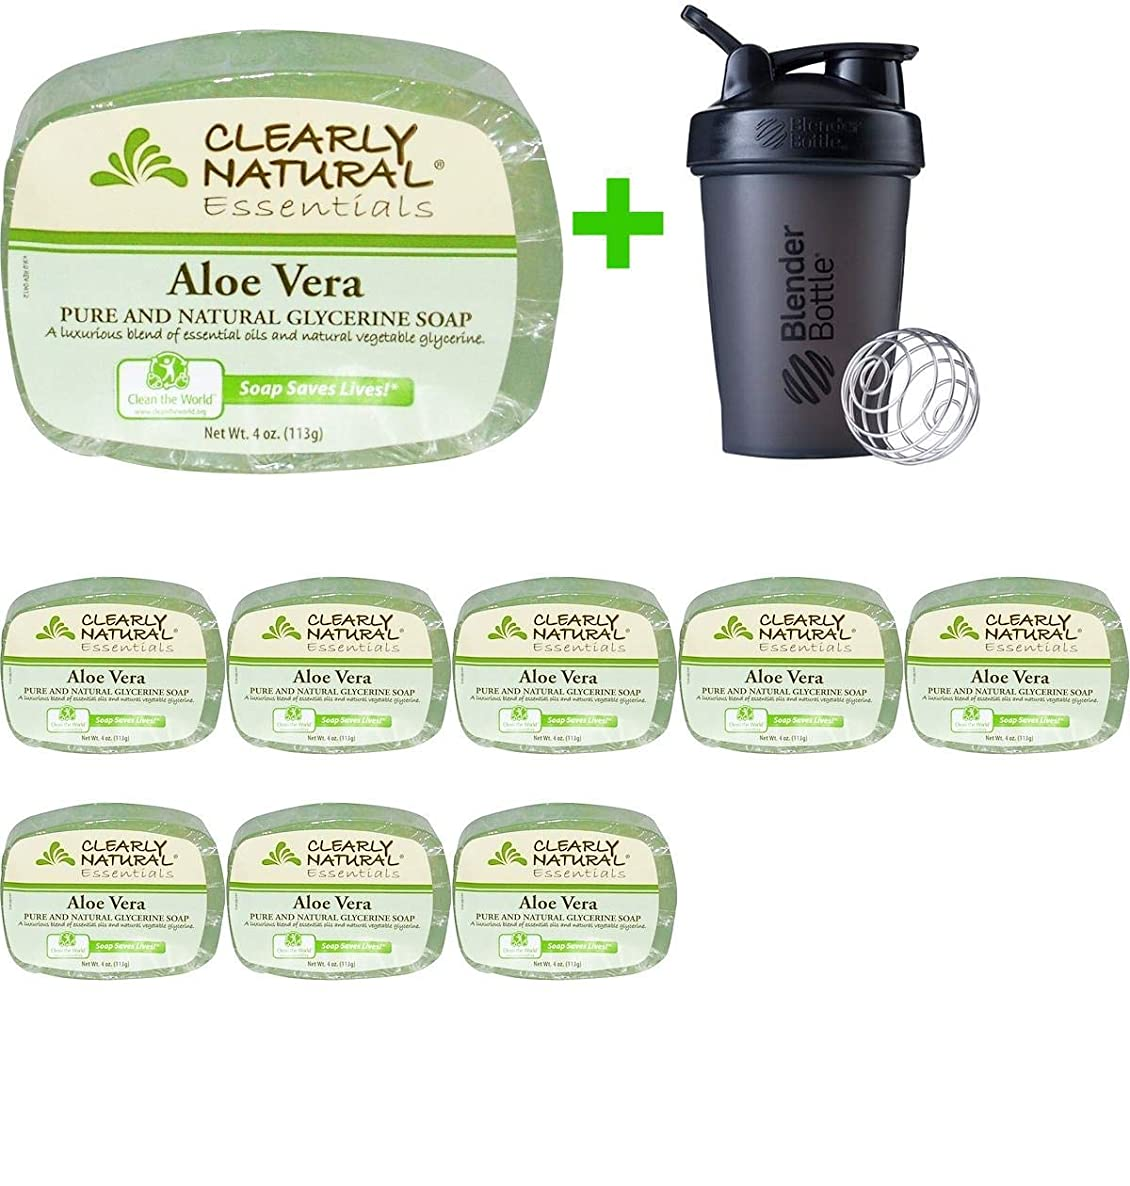 Clearly Natural, Essentials, Pure and Natural Glycerine Soap, Aloe Vera, 4 oz (113 g)(9 Pack(s)+Sundesa, Blender Bottle, Classic With Loop, 20 oz